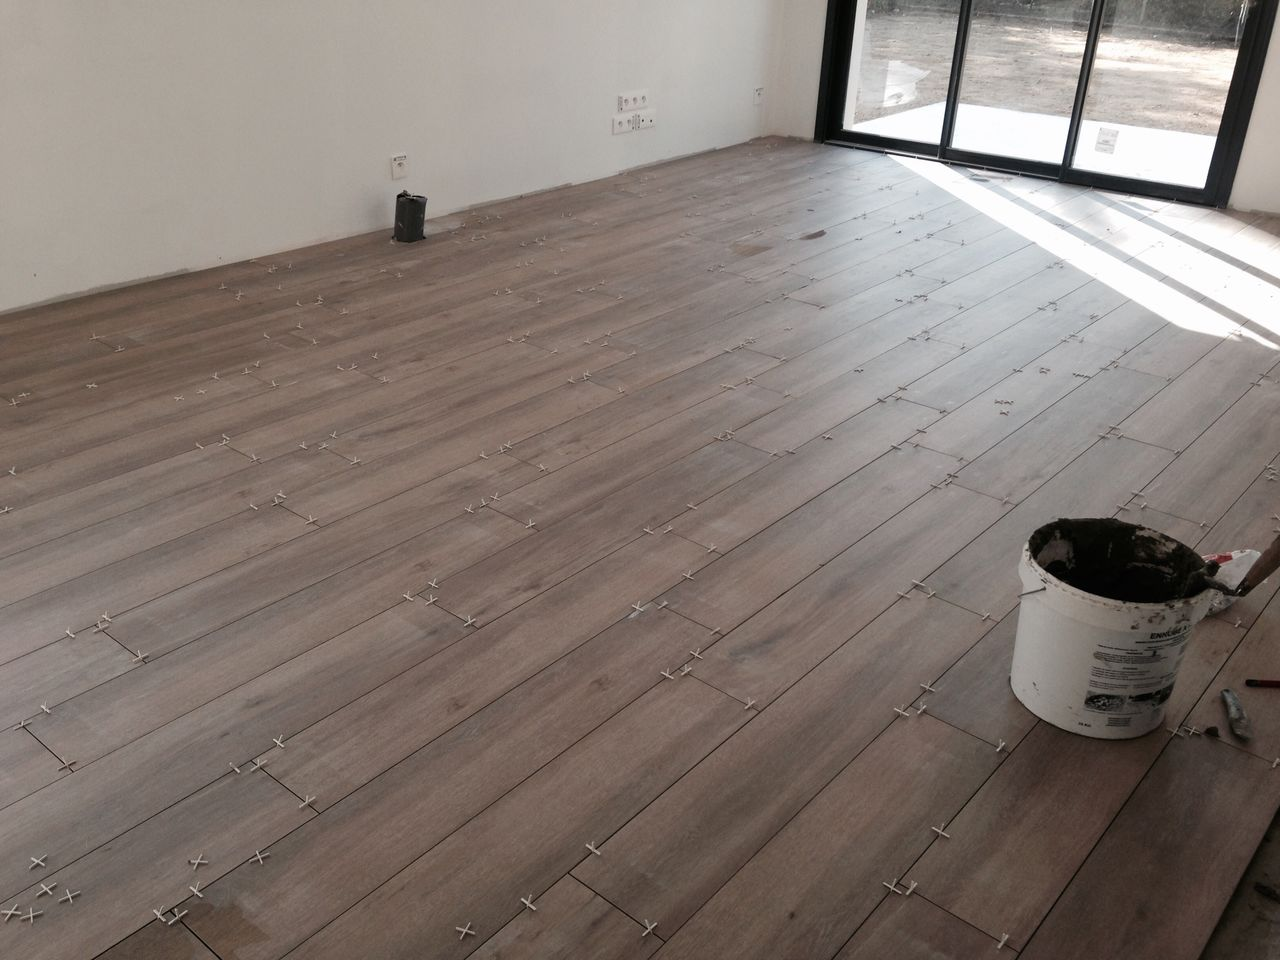 Quelle couleur de joints pour carrelage imitation parquet - Carrelage imitation parquet salon ...